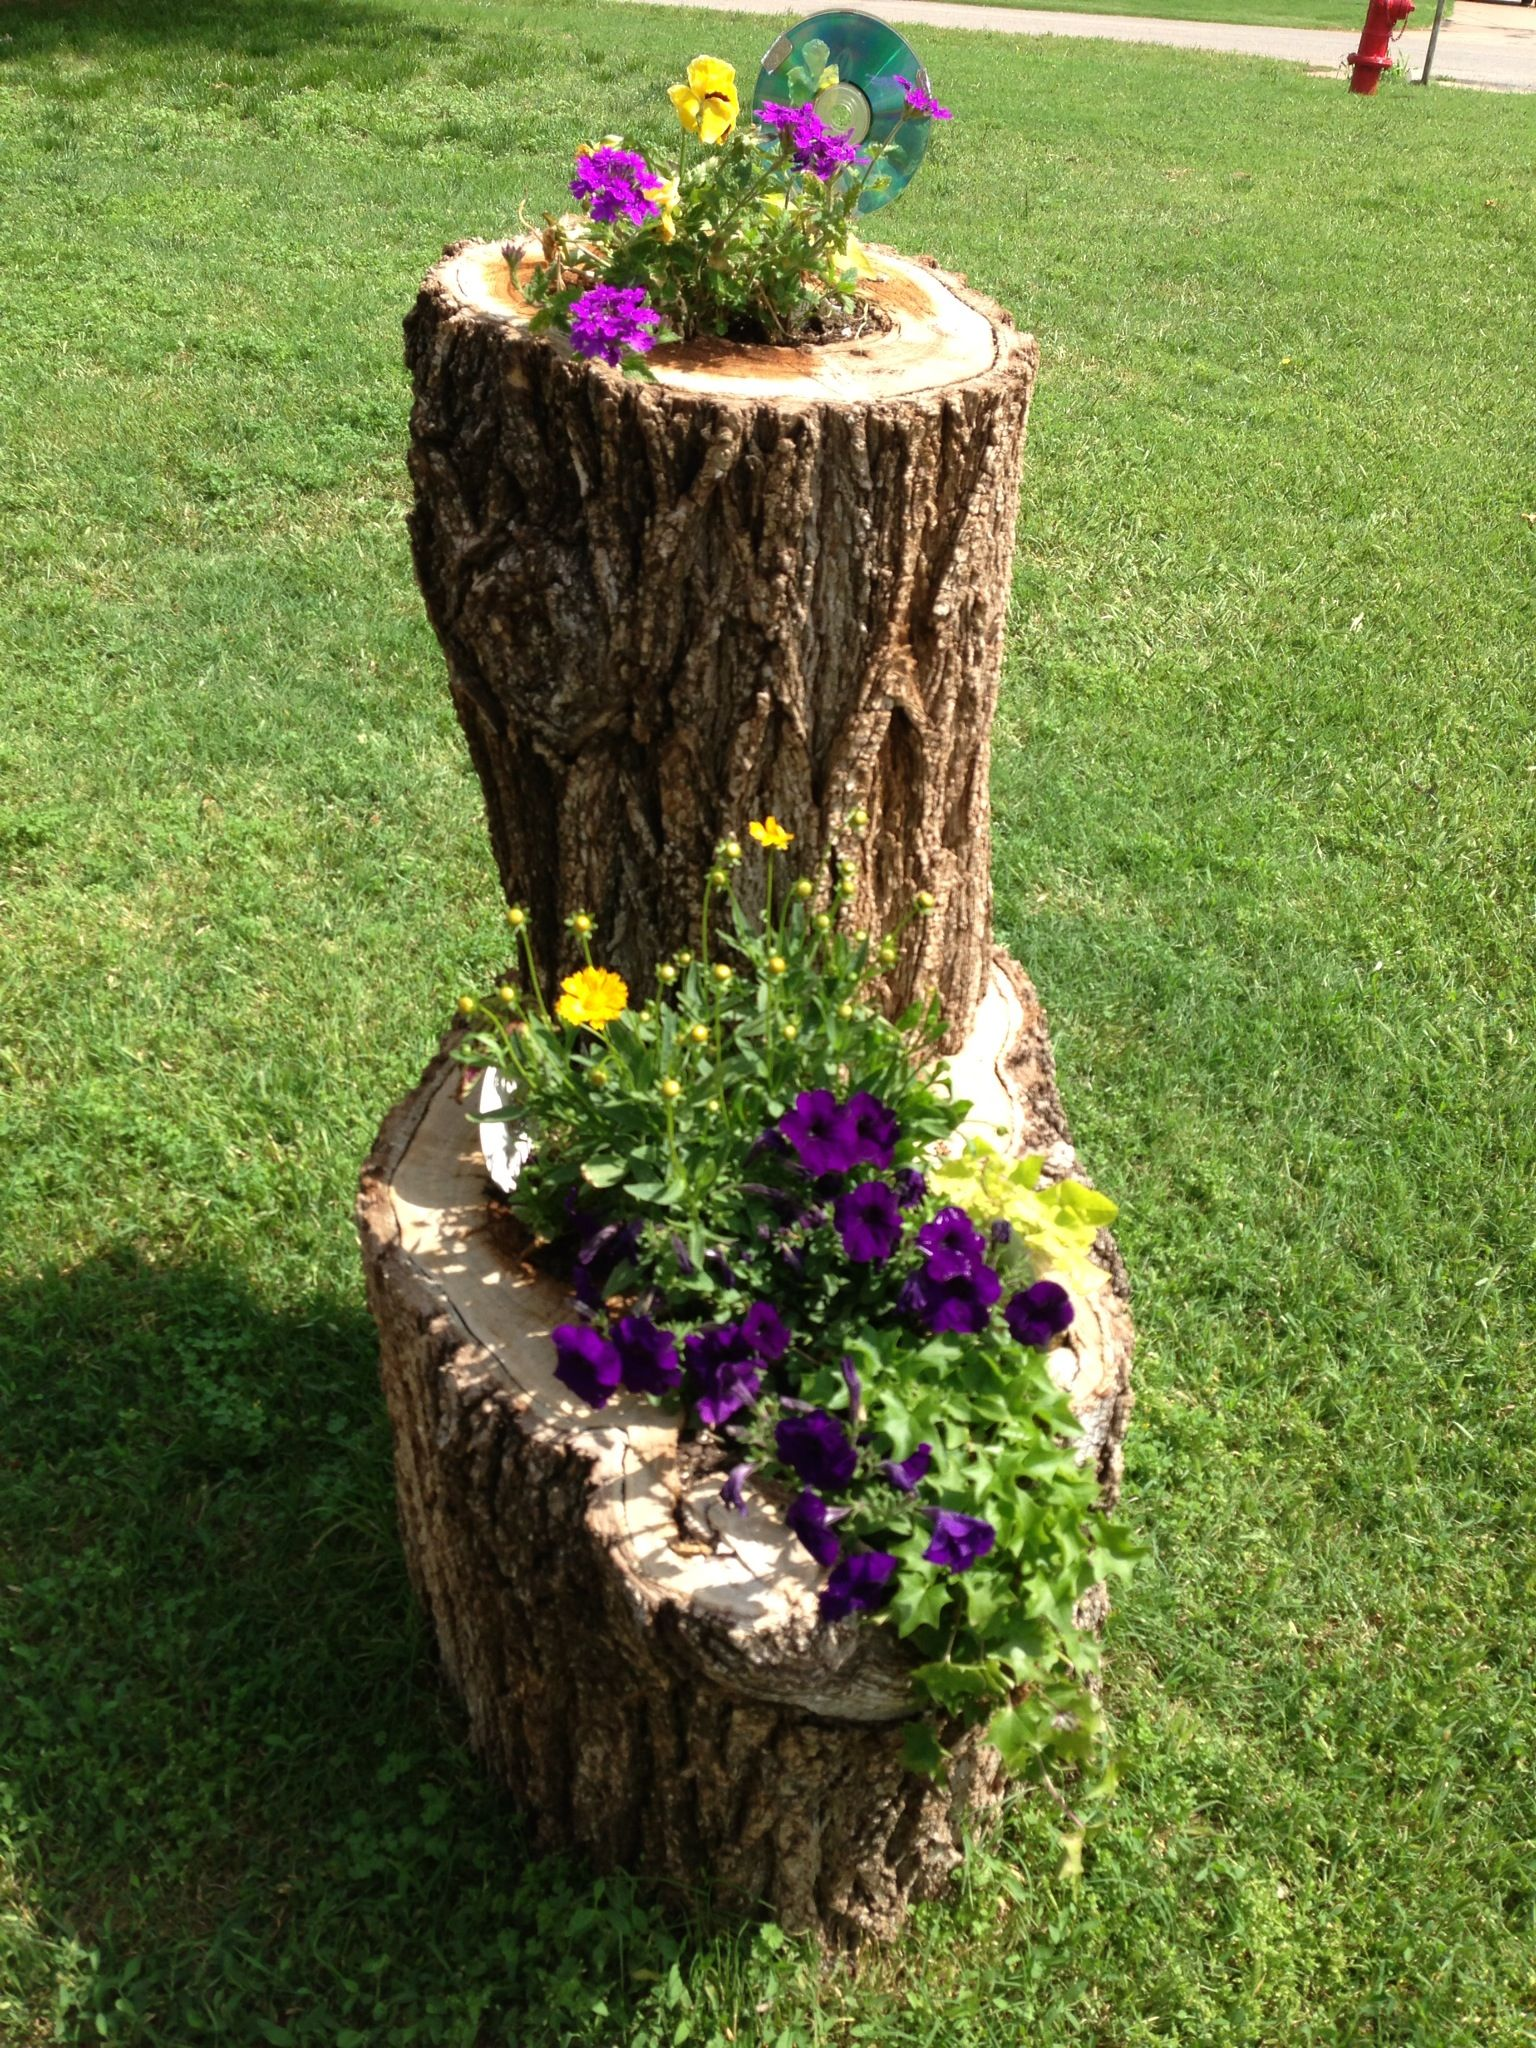 What to do with the tree stump So many beautiful ideas This was